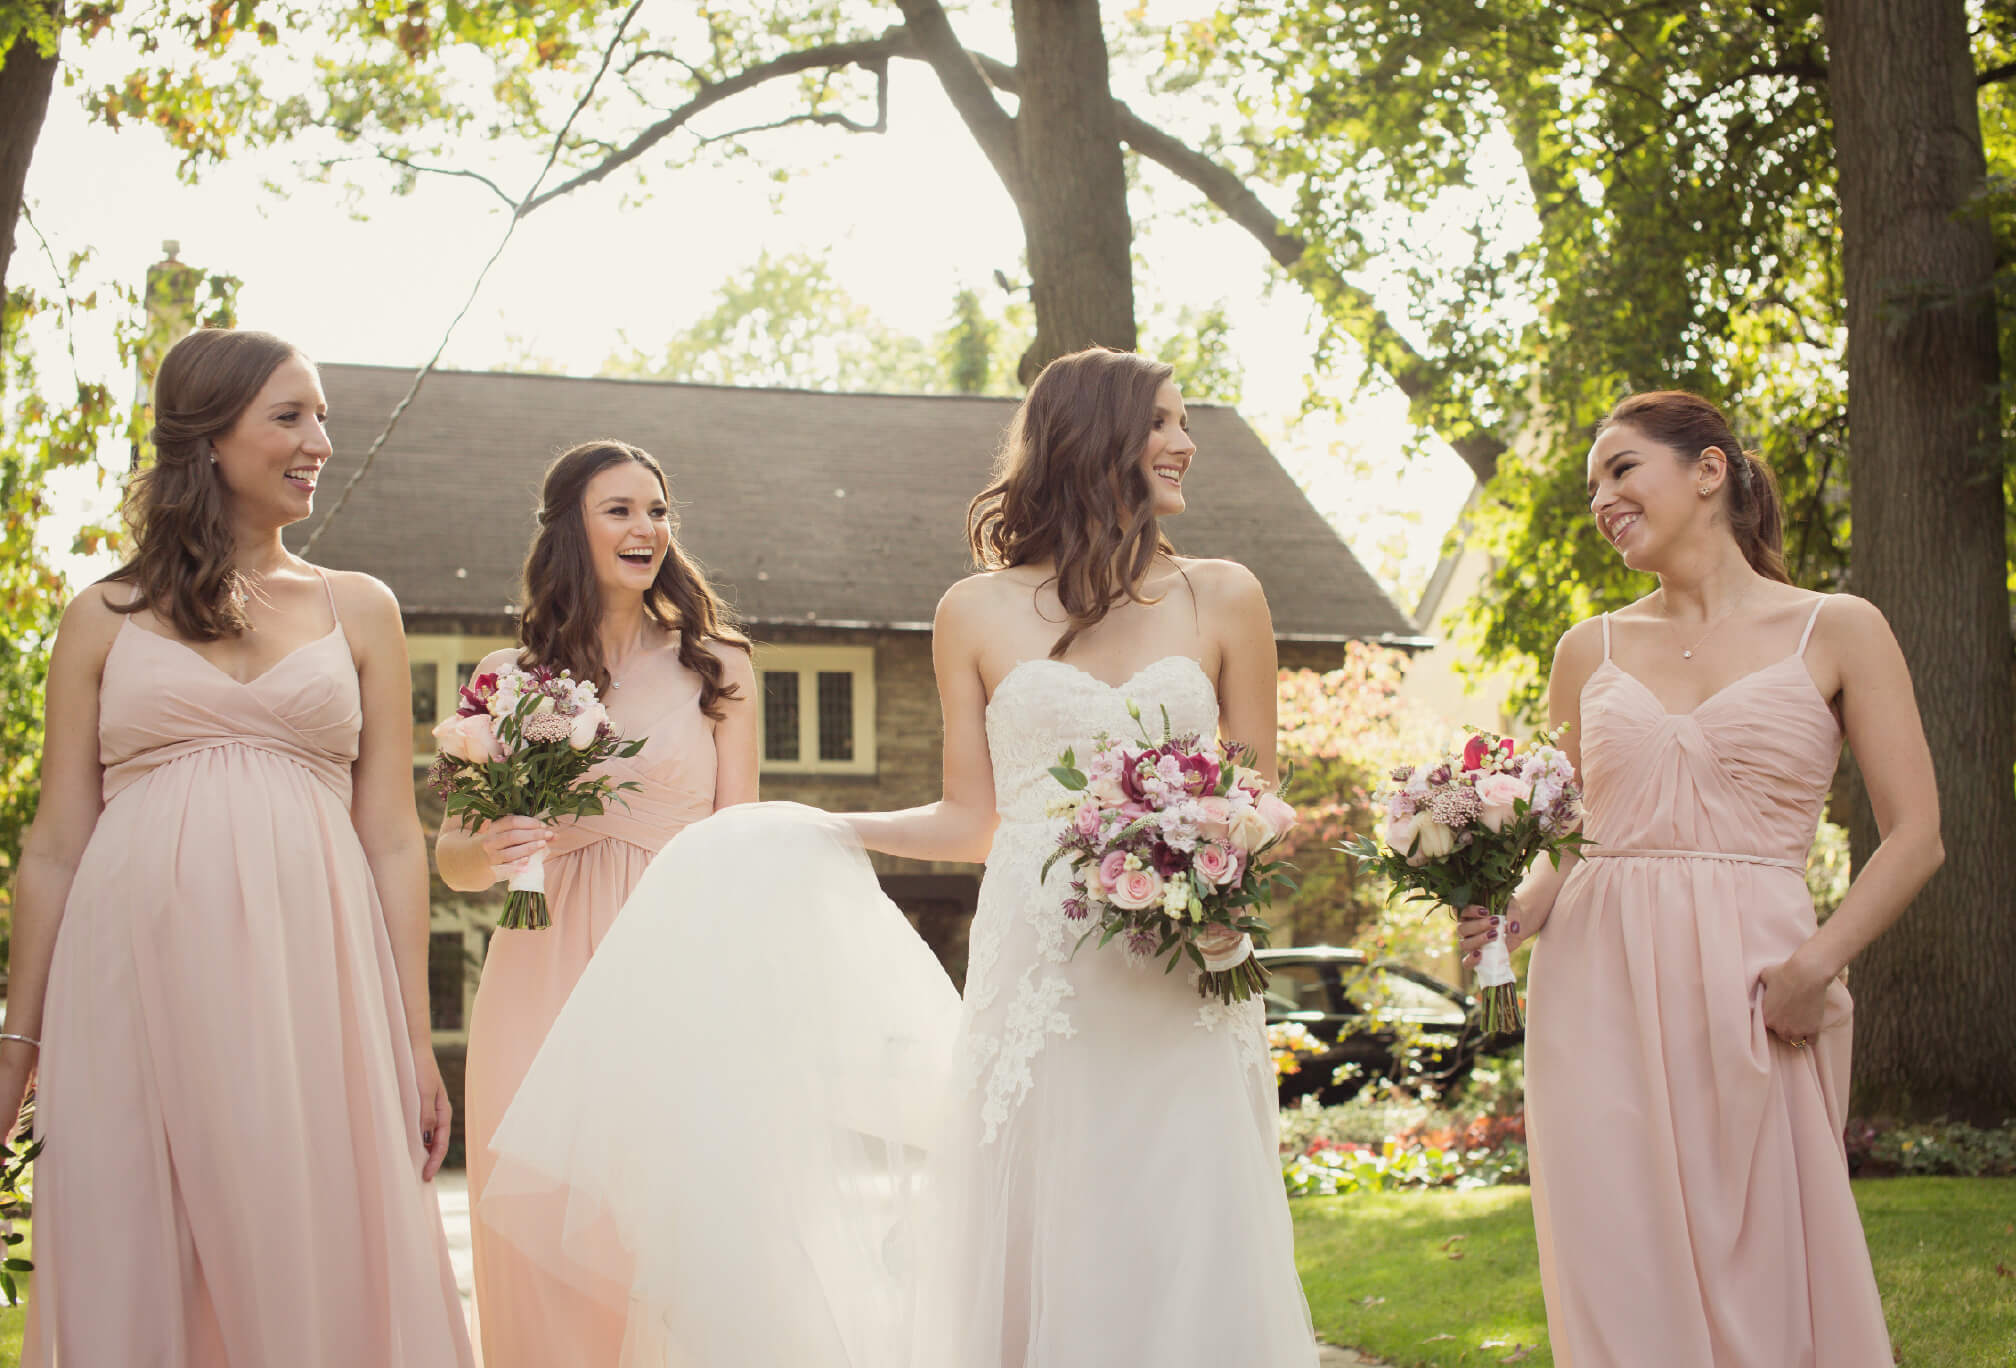 bride and bridesmaids candid moments